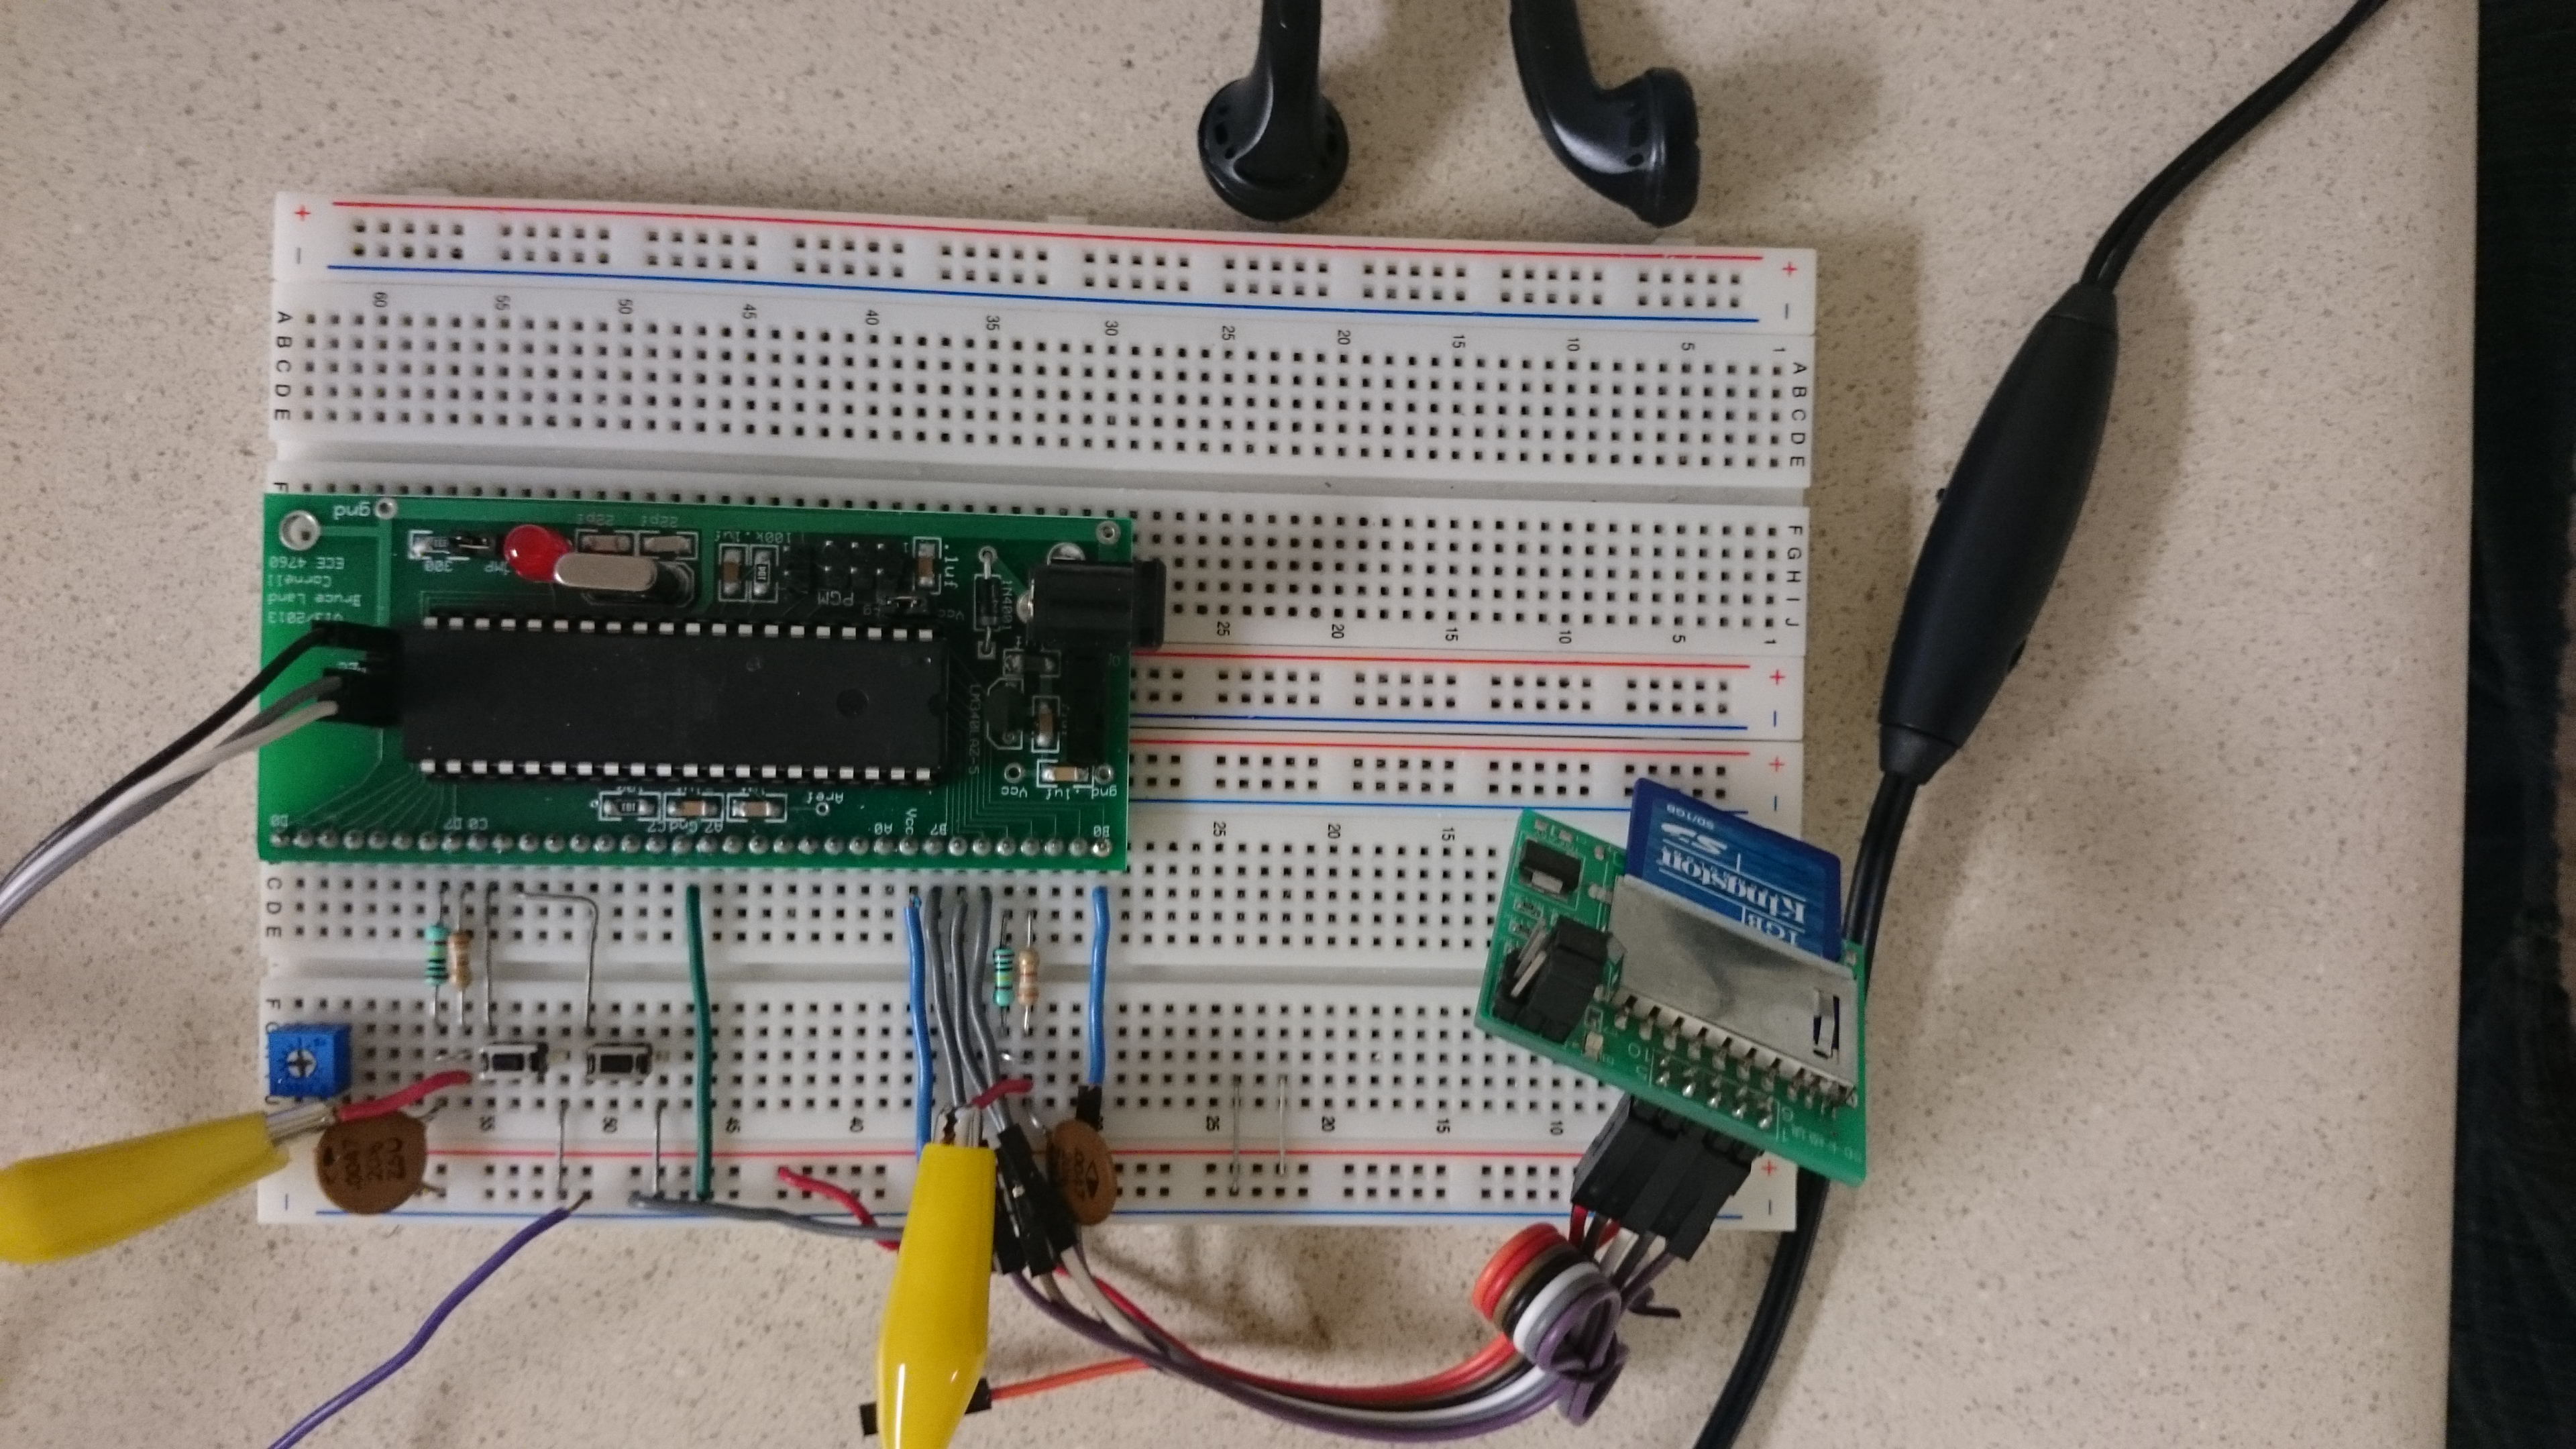 Ece 4760 16 Bit Stereo Wave Player The Hardware Is Implemented By Using A Avr Atmega88 Microcontroller Final Foot And Wrist Modules